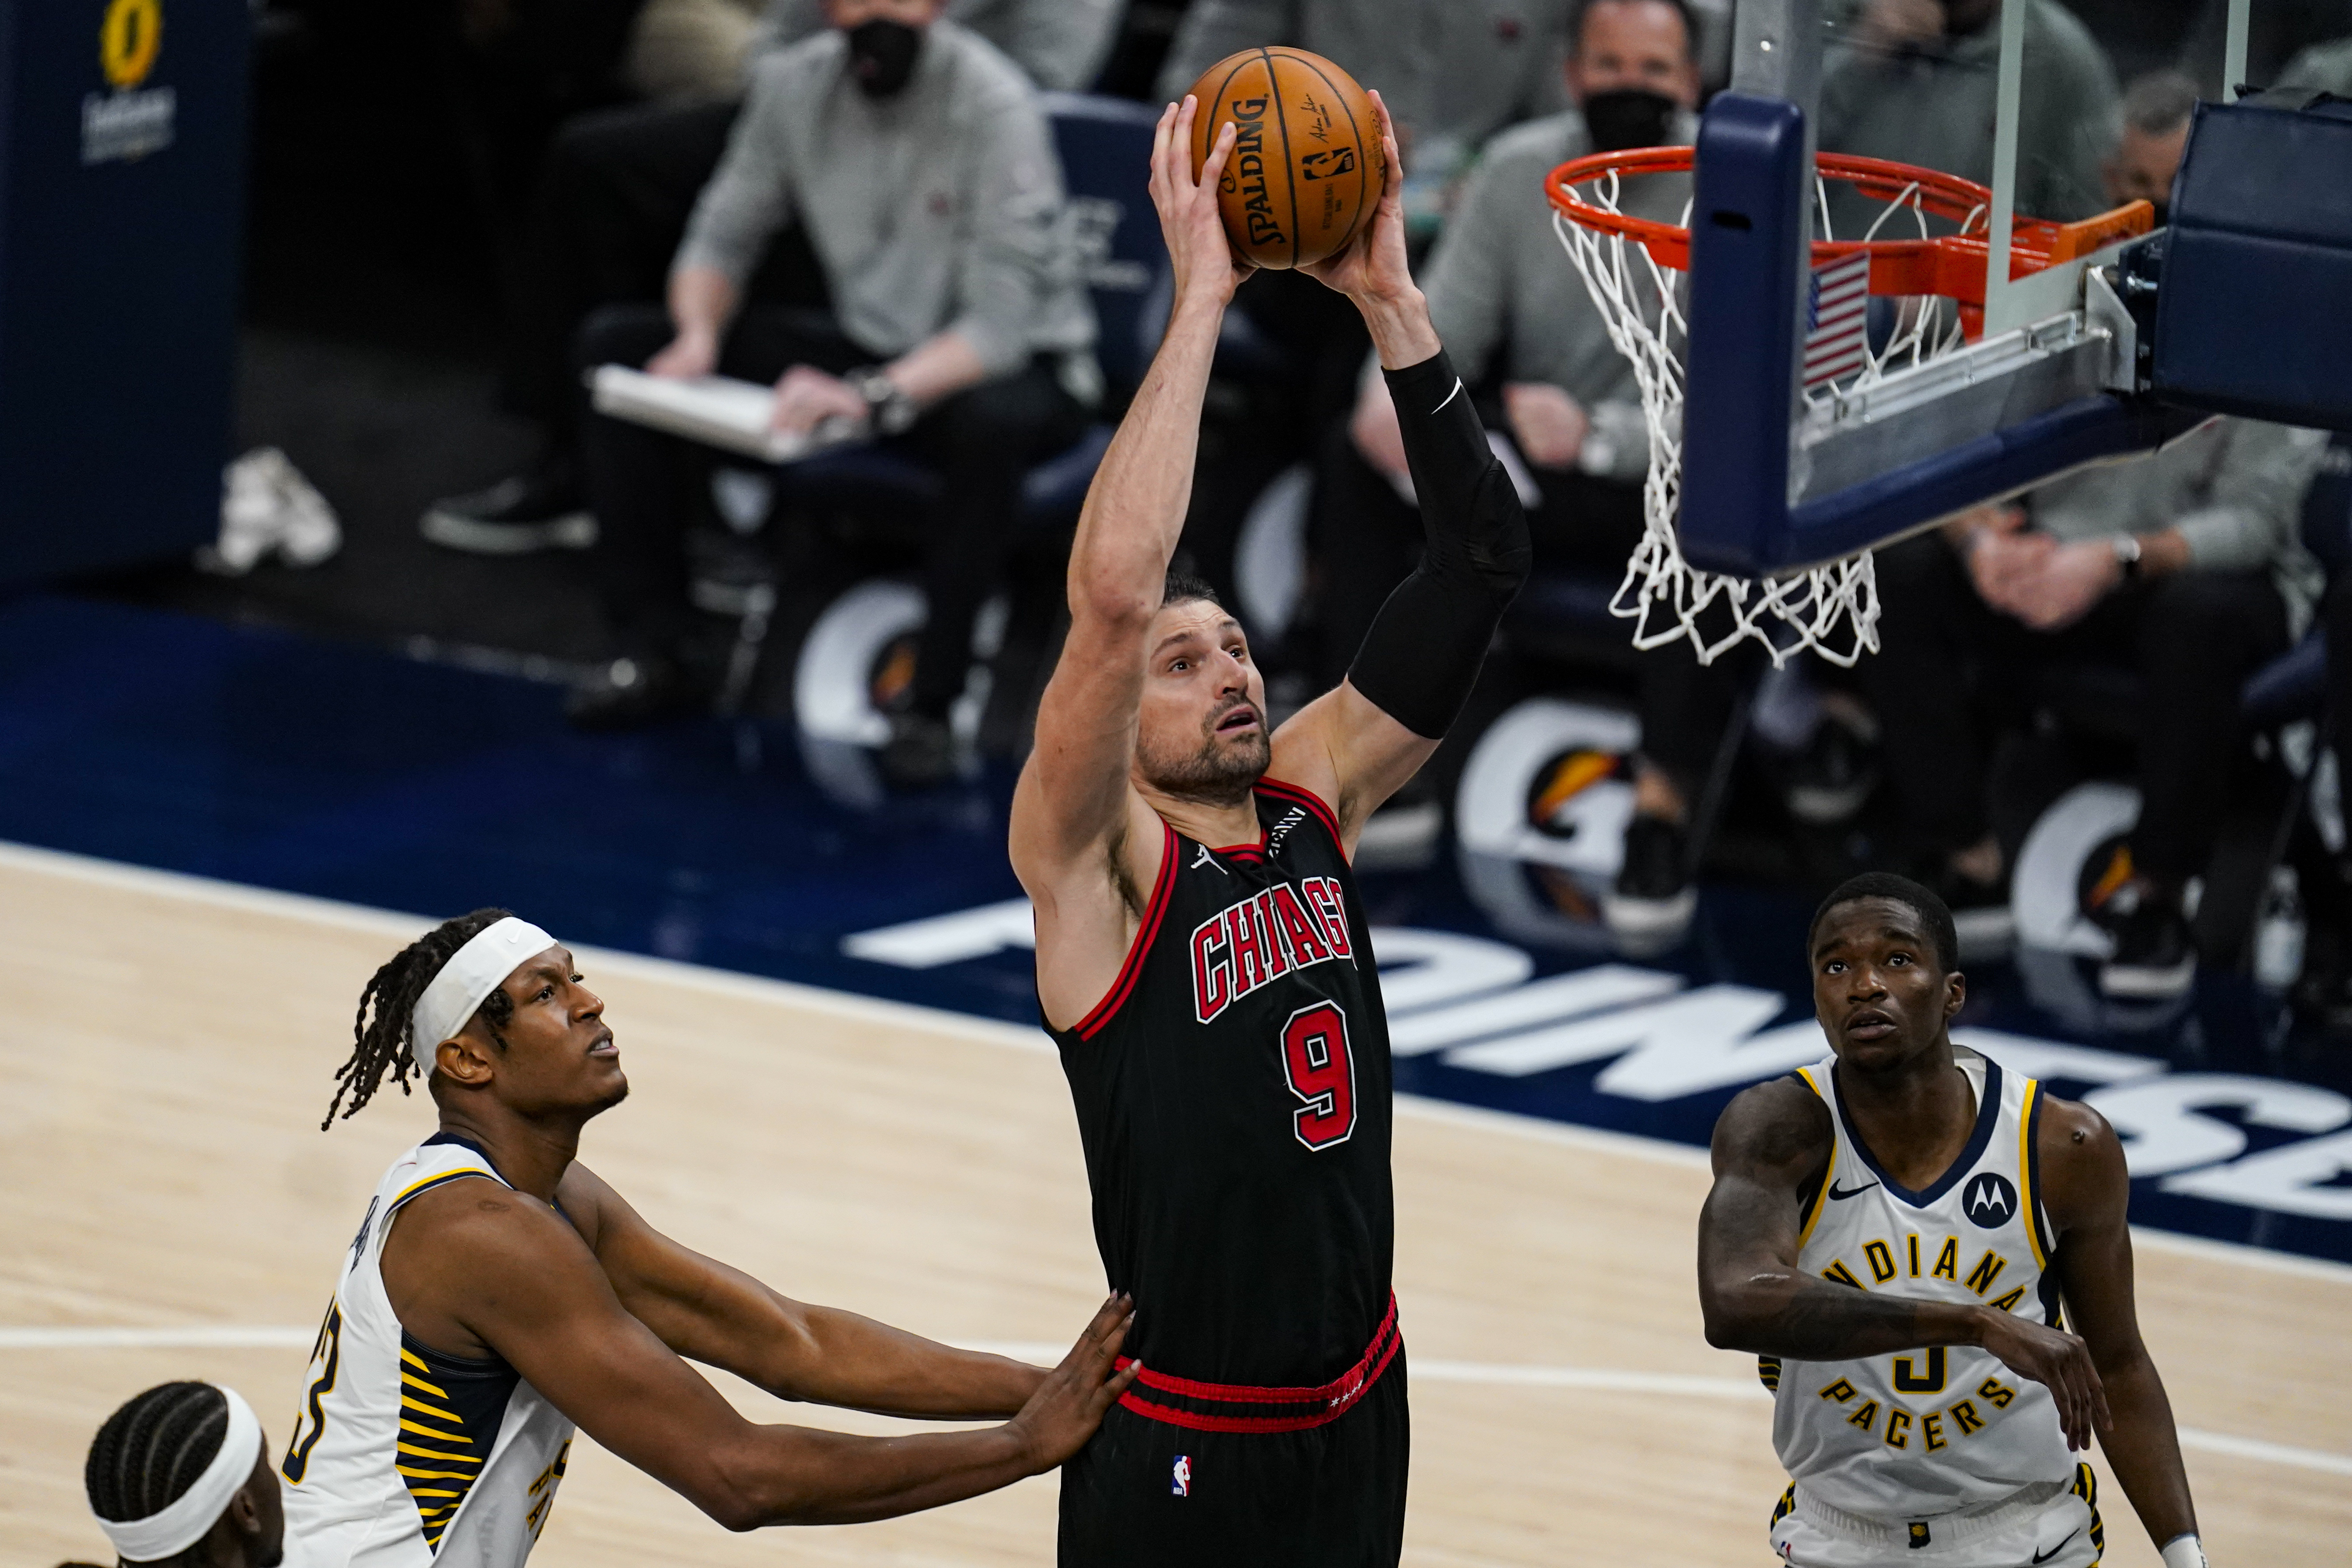 Bulls center Nikola Vucevic dunks over Pacers guard Edmond Sumner during the second half of Tuesday night's game.